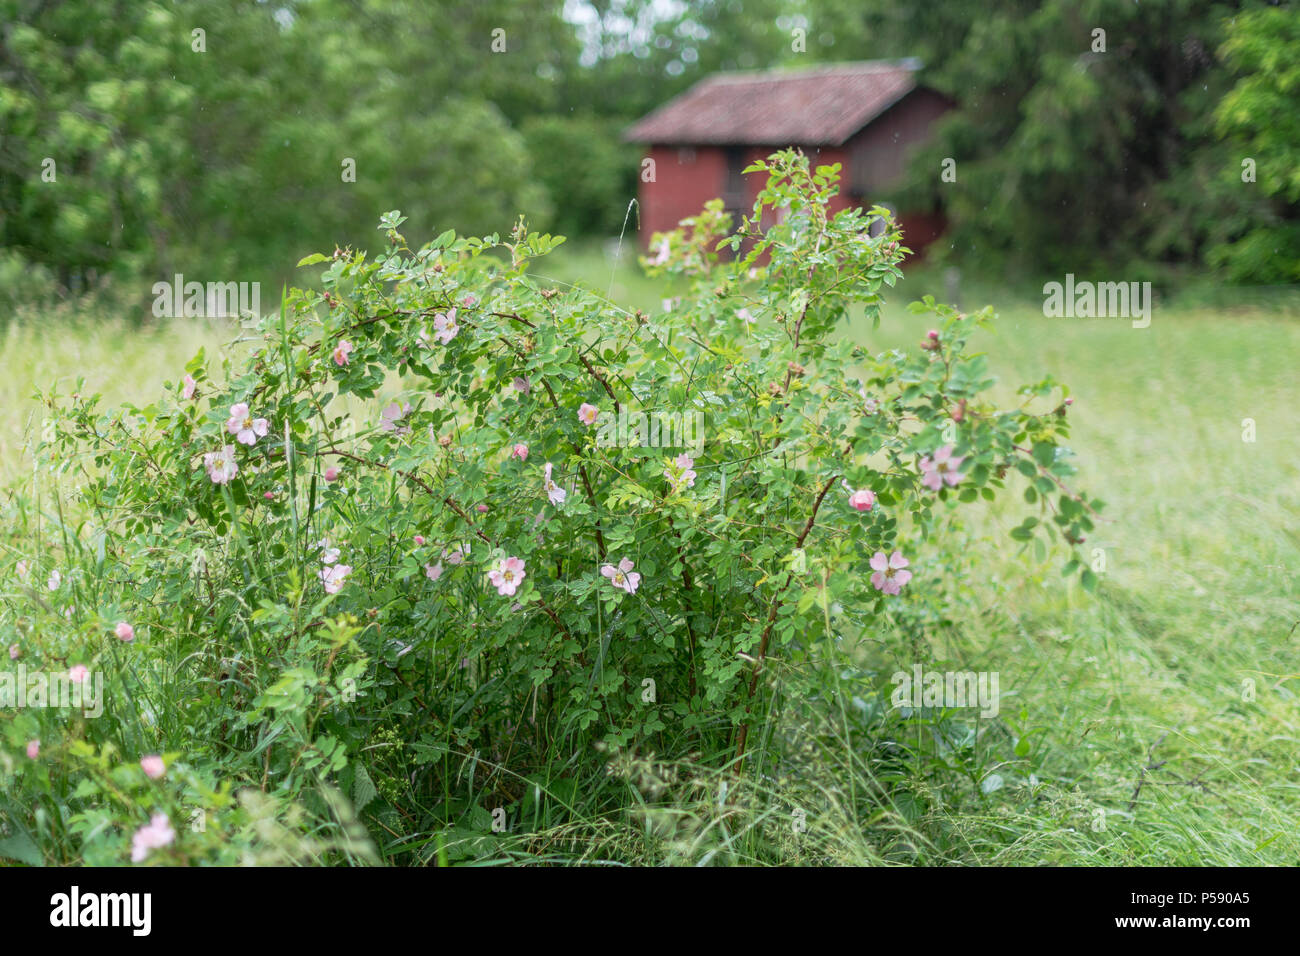 Rose Hip Bush With Pink Flowers And A Red House In The Background